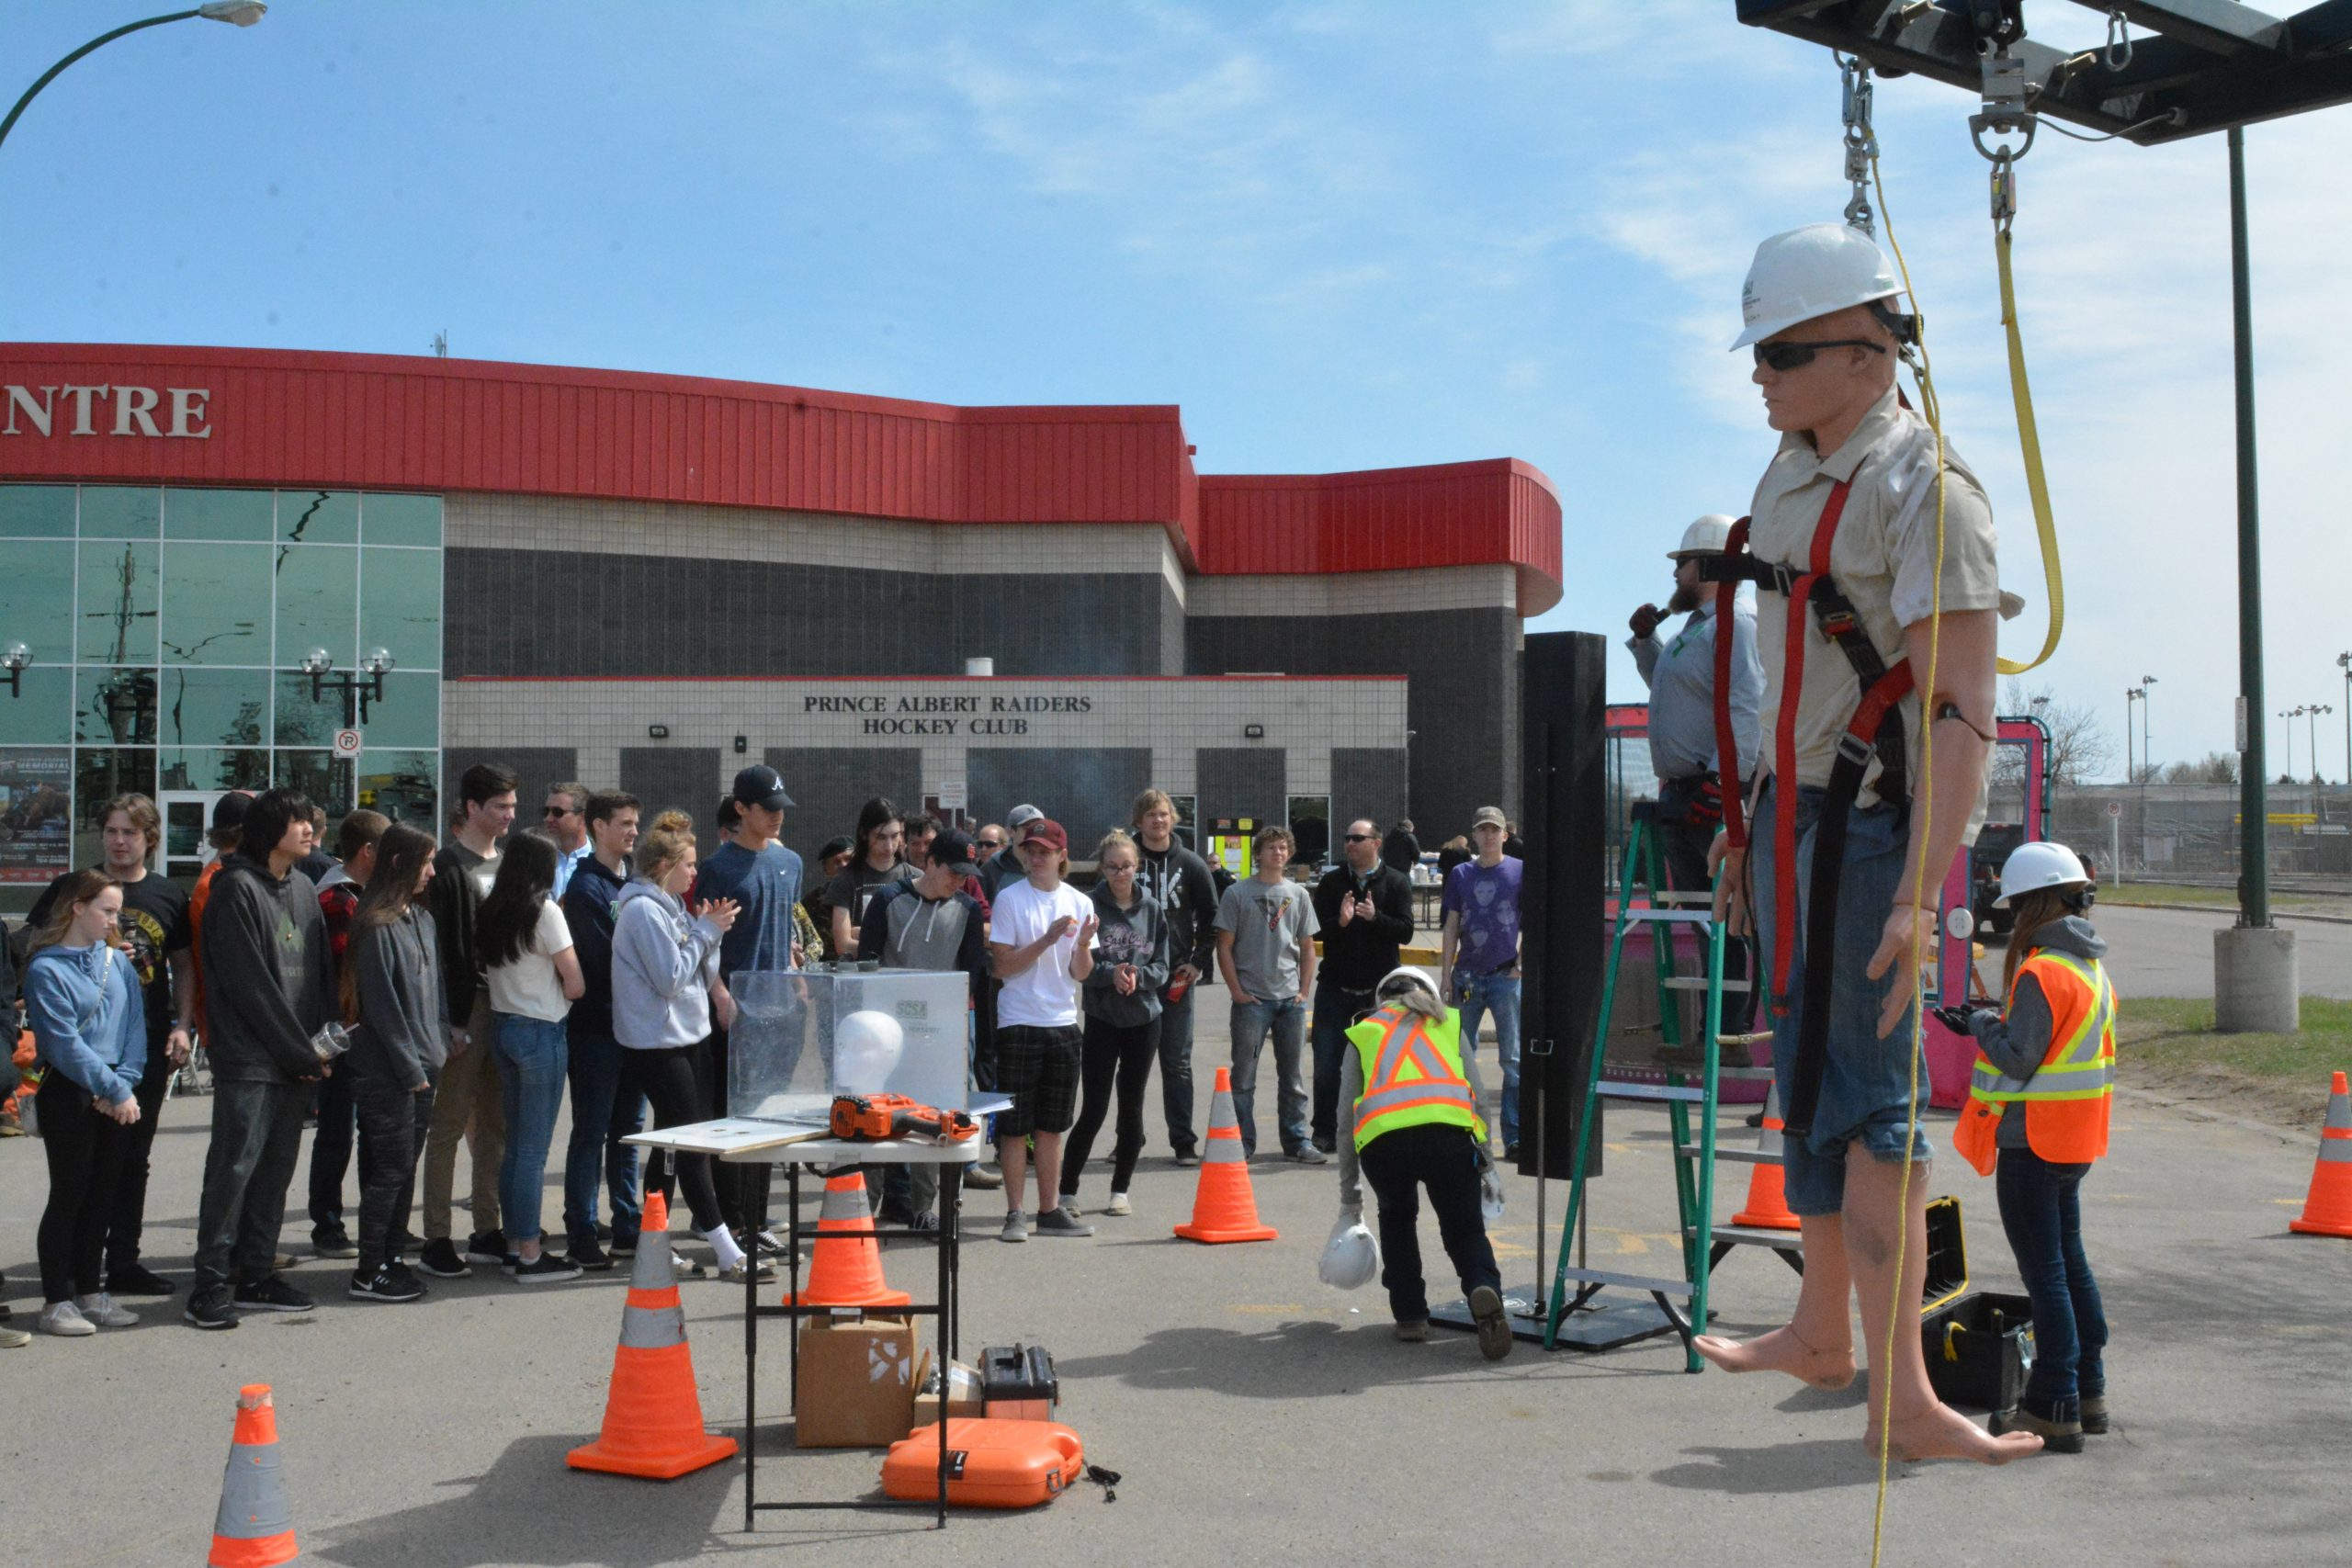 Paow News: Workplace Safety Presentation Hits Nail On Head